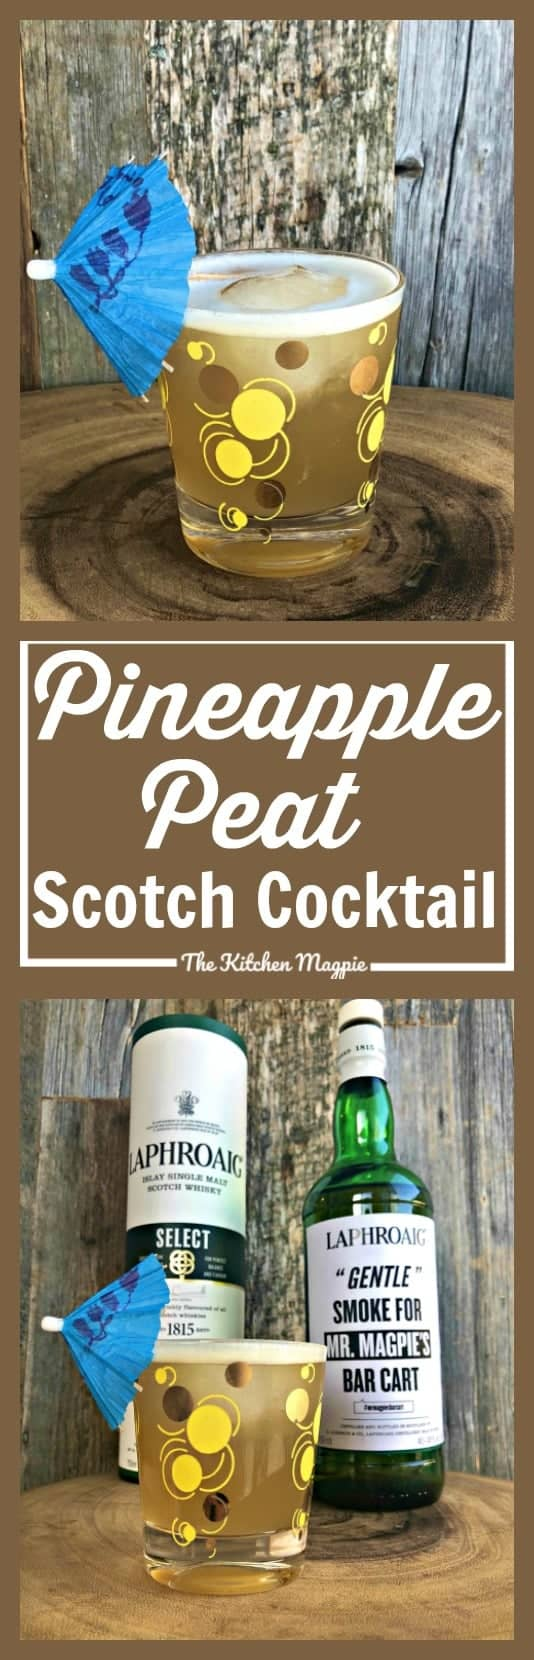 Pineapple Peat - Peated Scotch Cocktail featuring Laphroaig